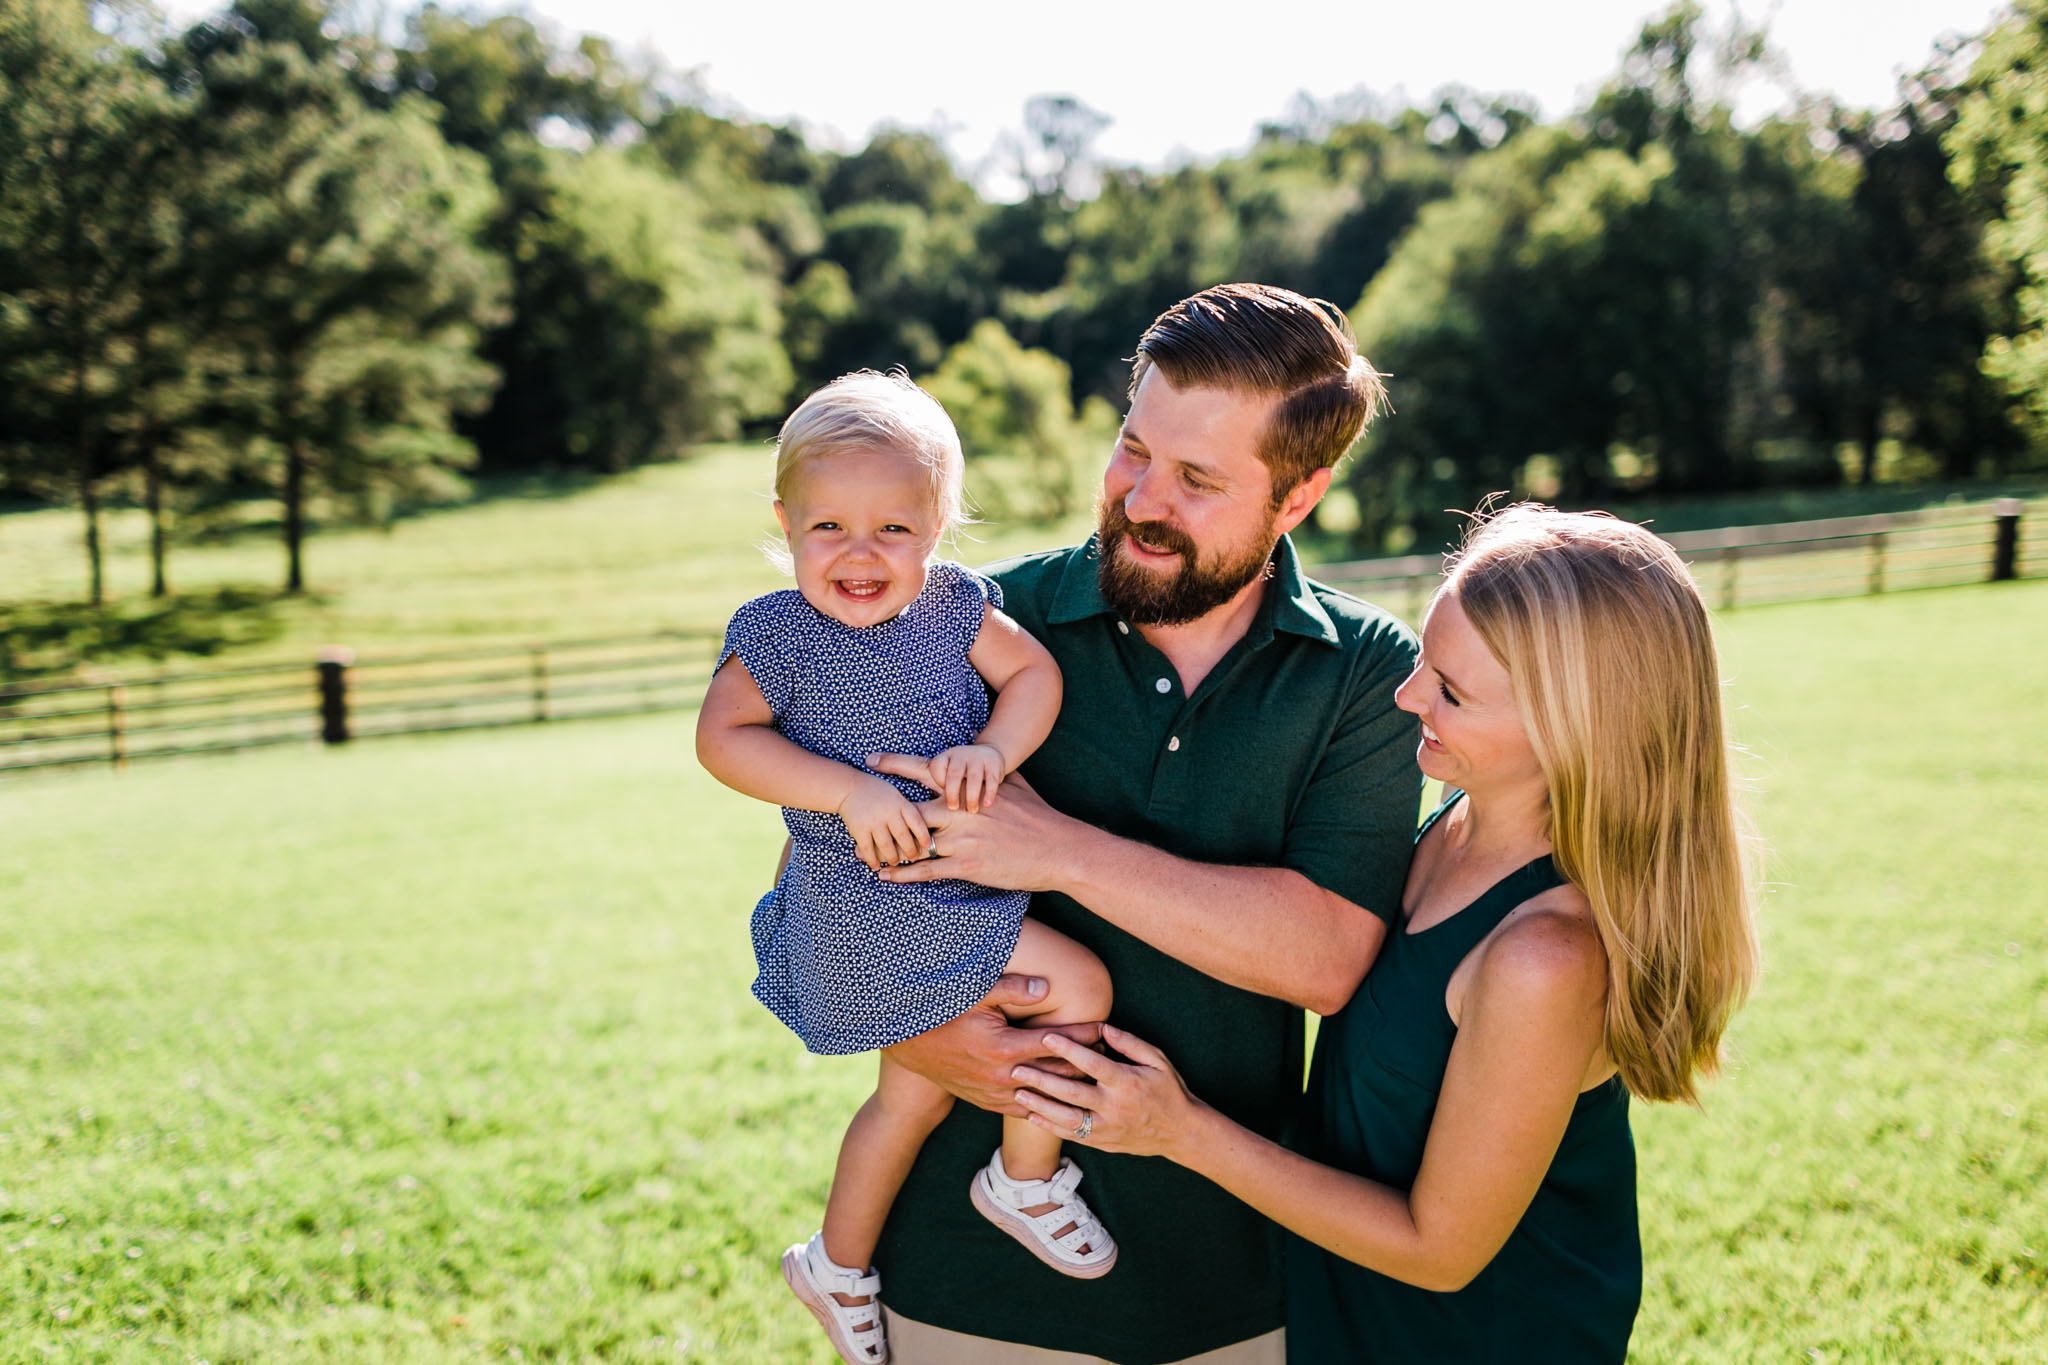 Durham Family Photographer | By G. Lin Photography | Mom and dad holding baby girl outside